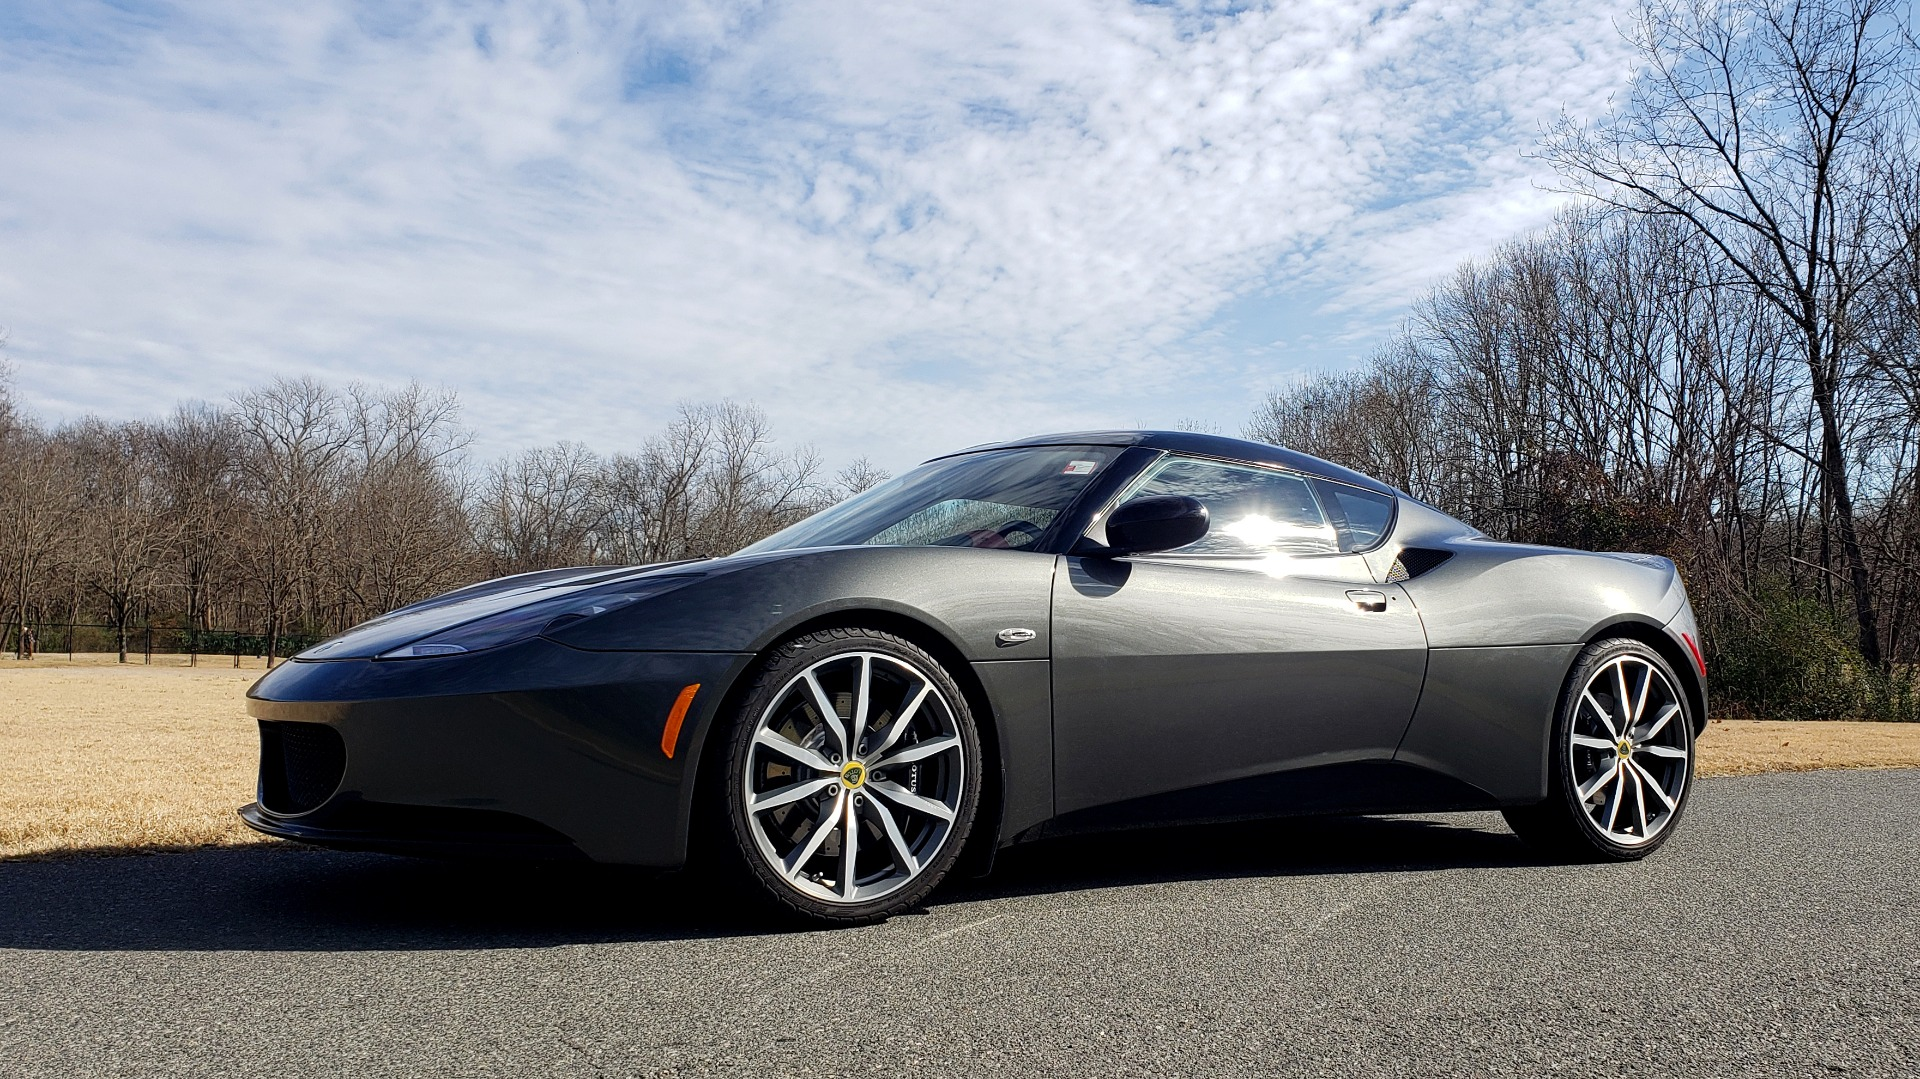 Used 2011 Lotus EVORA S 2+2 / 3.5L V6 / 6-SPD MANUAL / PIONEER / REARVIEW / LOW MILES for sale Sold at Formula Imports in Charlotte NC 28227 3